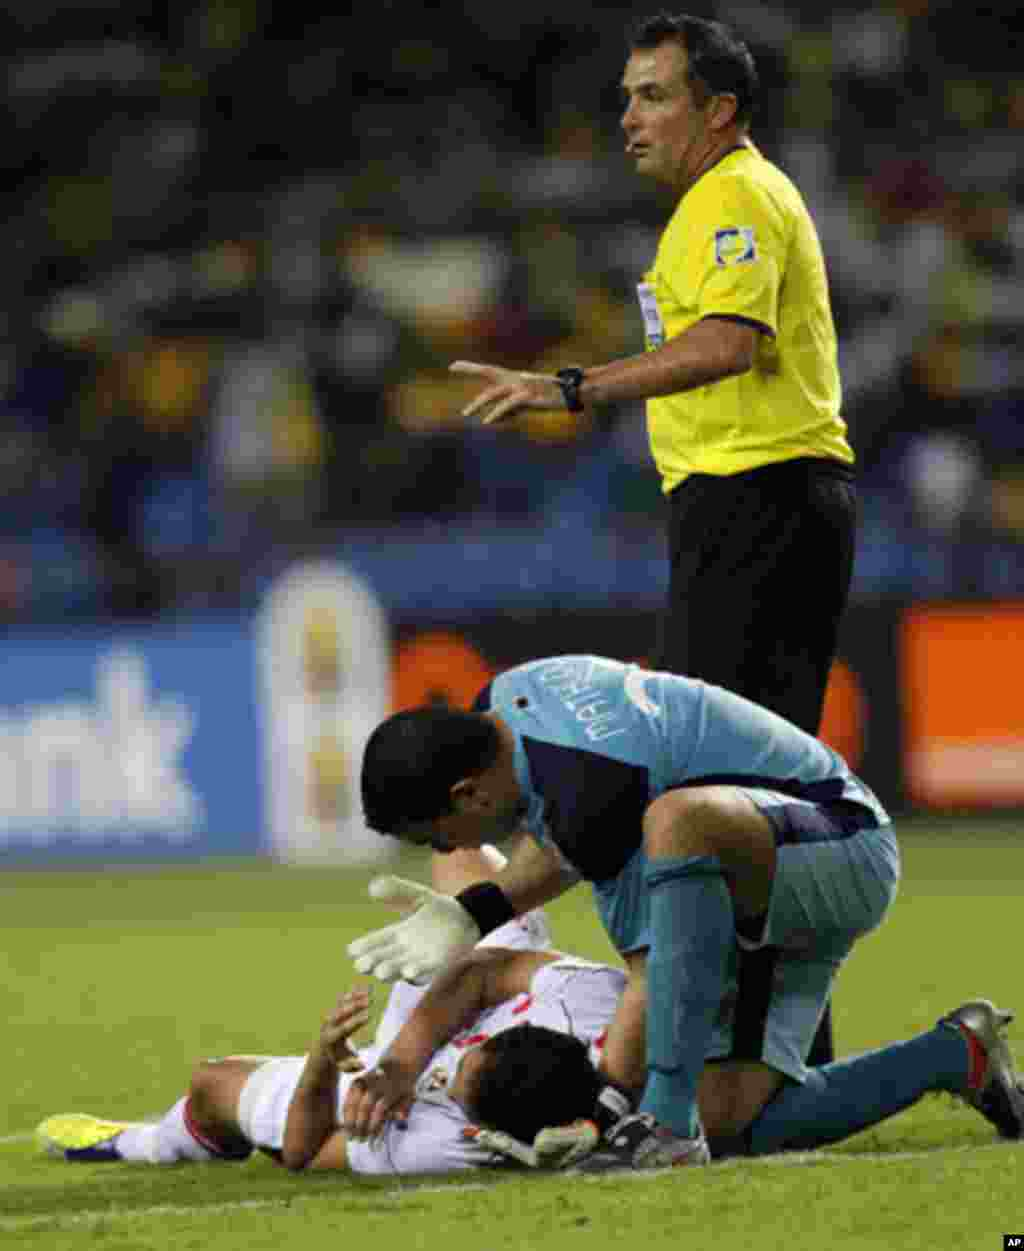 Tunisia's goalkeeper Mathlouthi Ayem attends to injured teammate Jemal Ammar as referee Daniel Bennett from South Africa calls for assistance during their African Cup of Nations Group C soccer match against Morocco at Stade De L'Amitie Stadium in Librevil